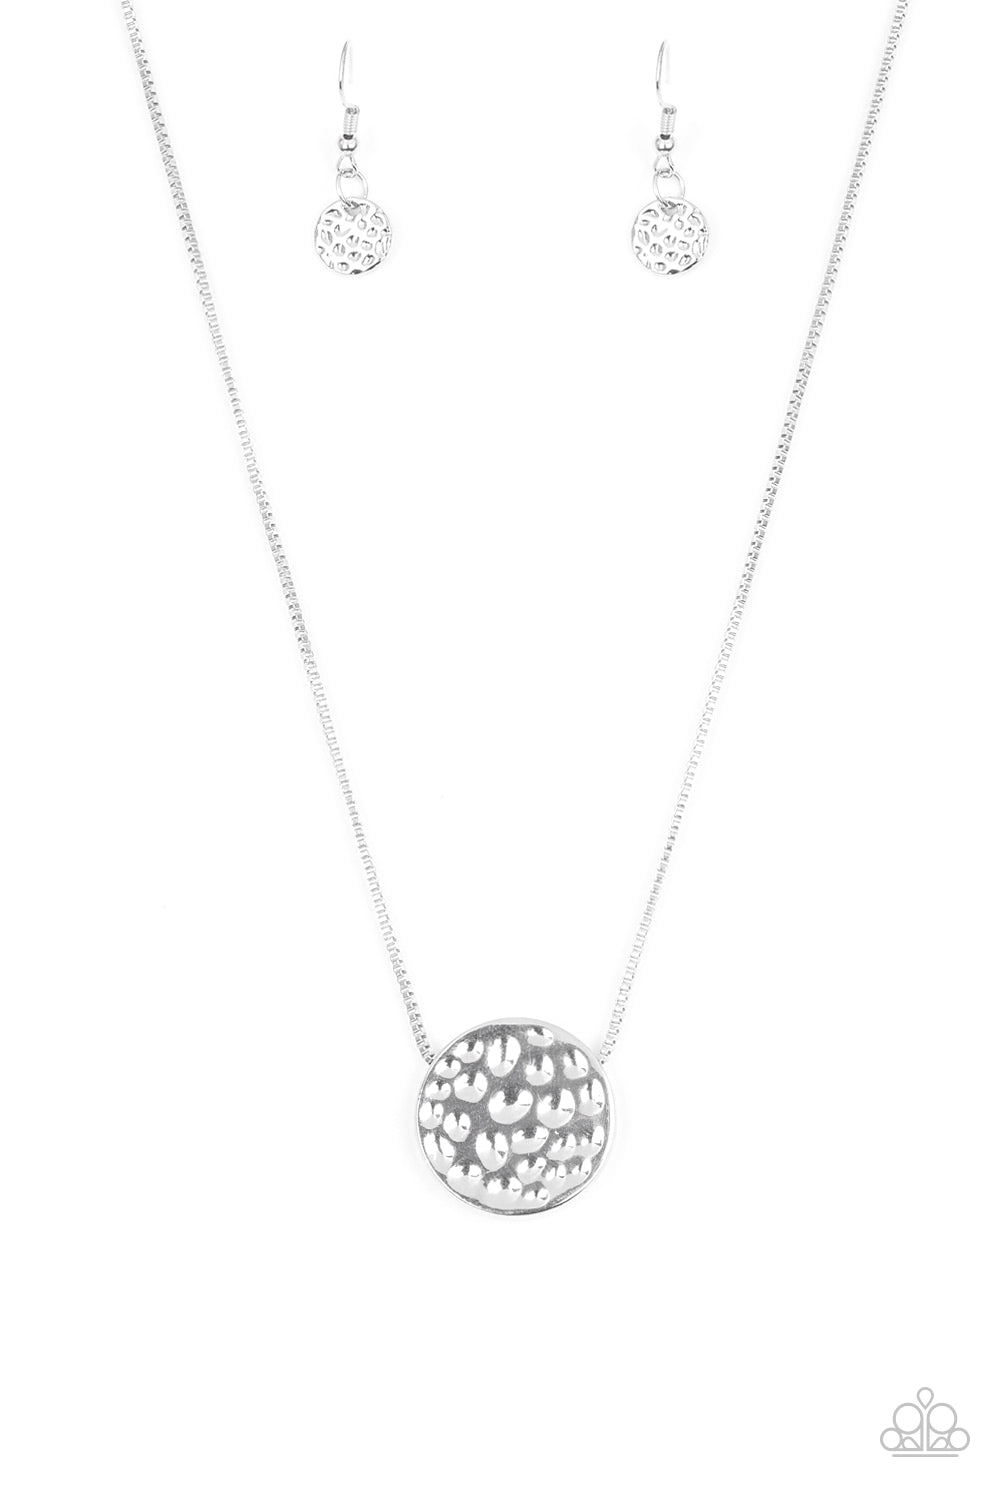 Paparazzi Necklace ~ The BOLD Standard - Silver